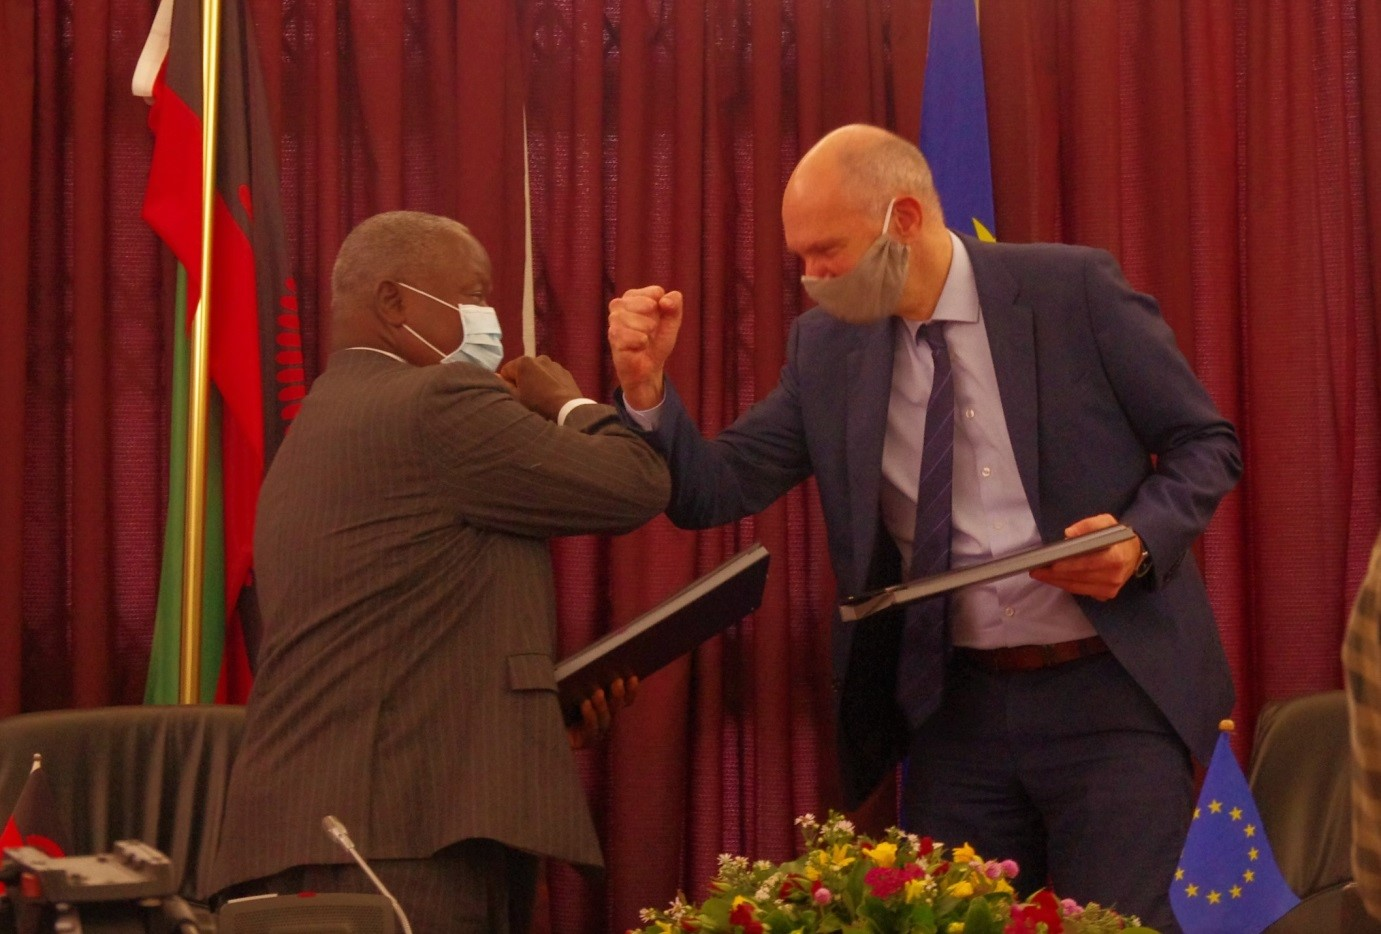 Hon. Felix Mlusu, Minister of Finance and Ivo Hoefkens, EU Head of Cooperation and Charge d'Affaires confidently exchanging signed documents on the Zantchito (Skills for Jobs) Programme